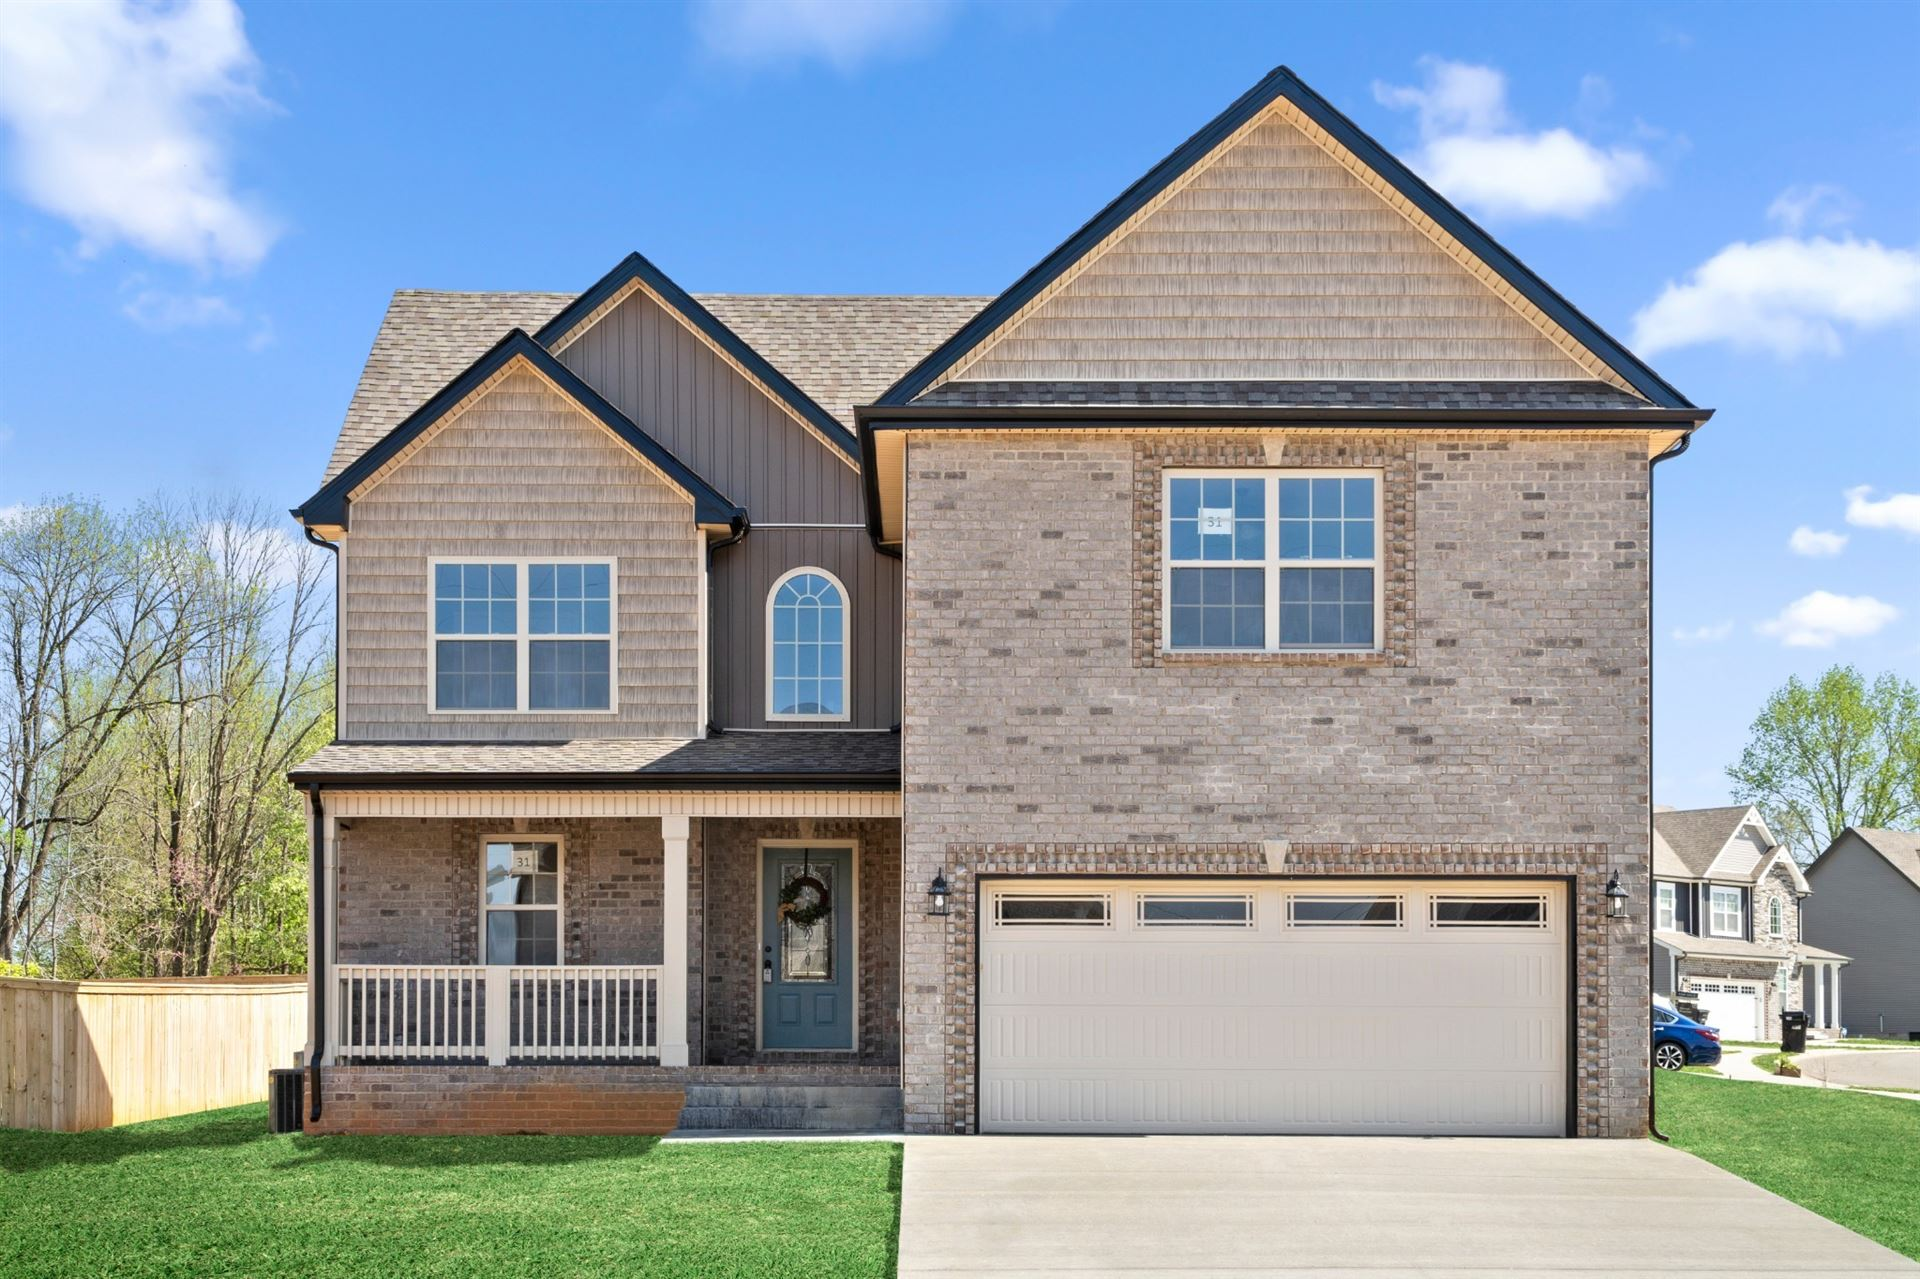 Photo of 1094 Eagles View Dr, Clarksville, TN 37040 (MLS # 2156329)